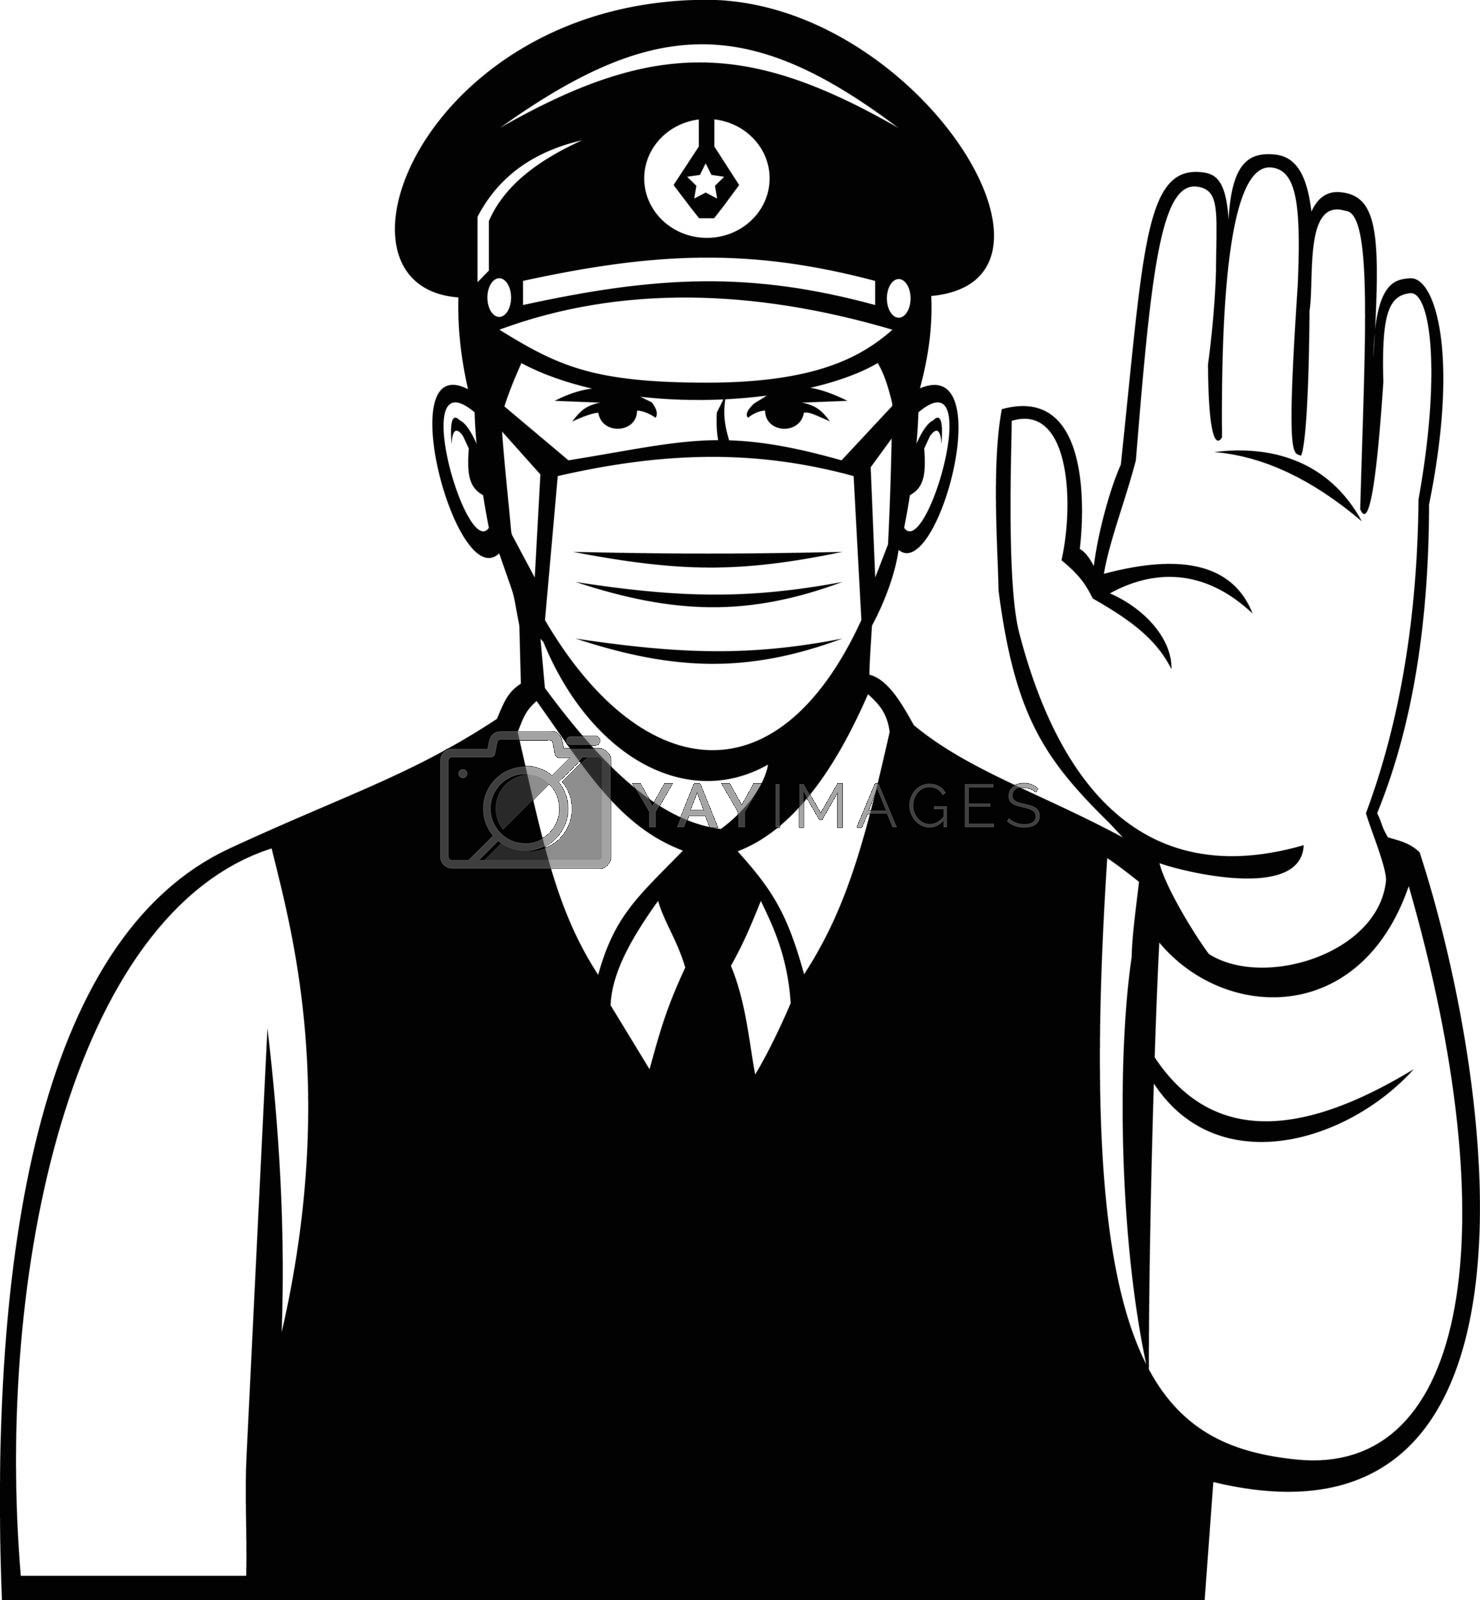 Black and white cartoon illustration of a Japanese policeman or police officer wearing face mask or covering showing stop hand signal viewed from front in retro style on isolated background.